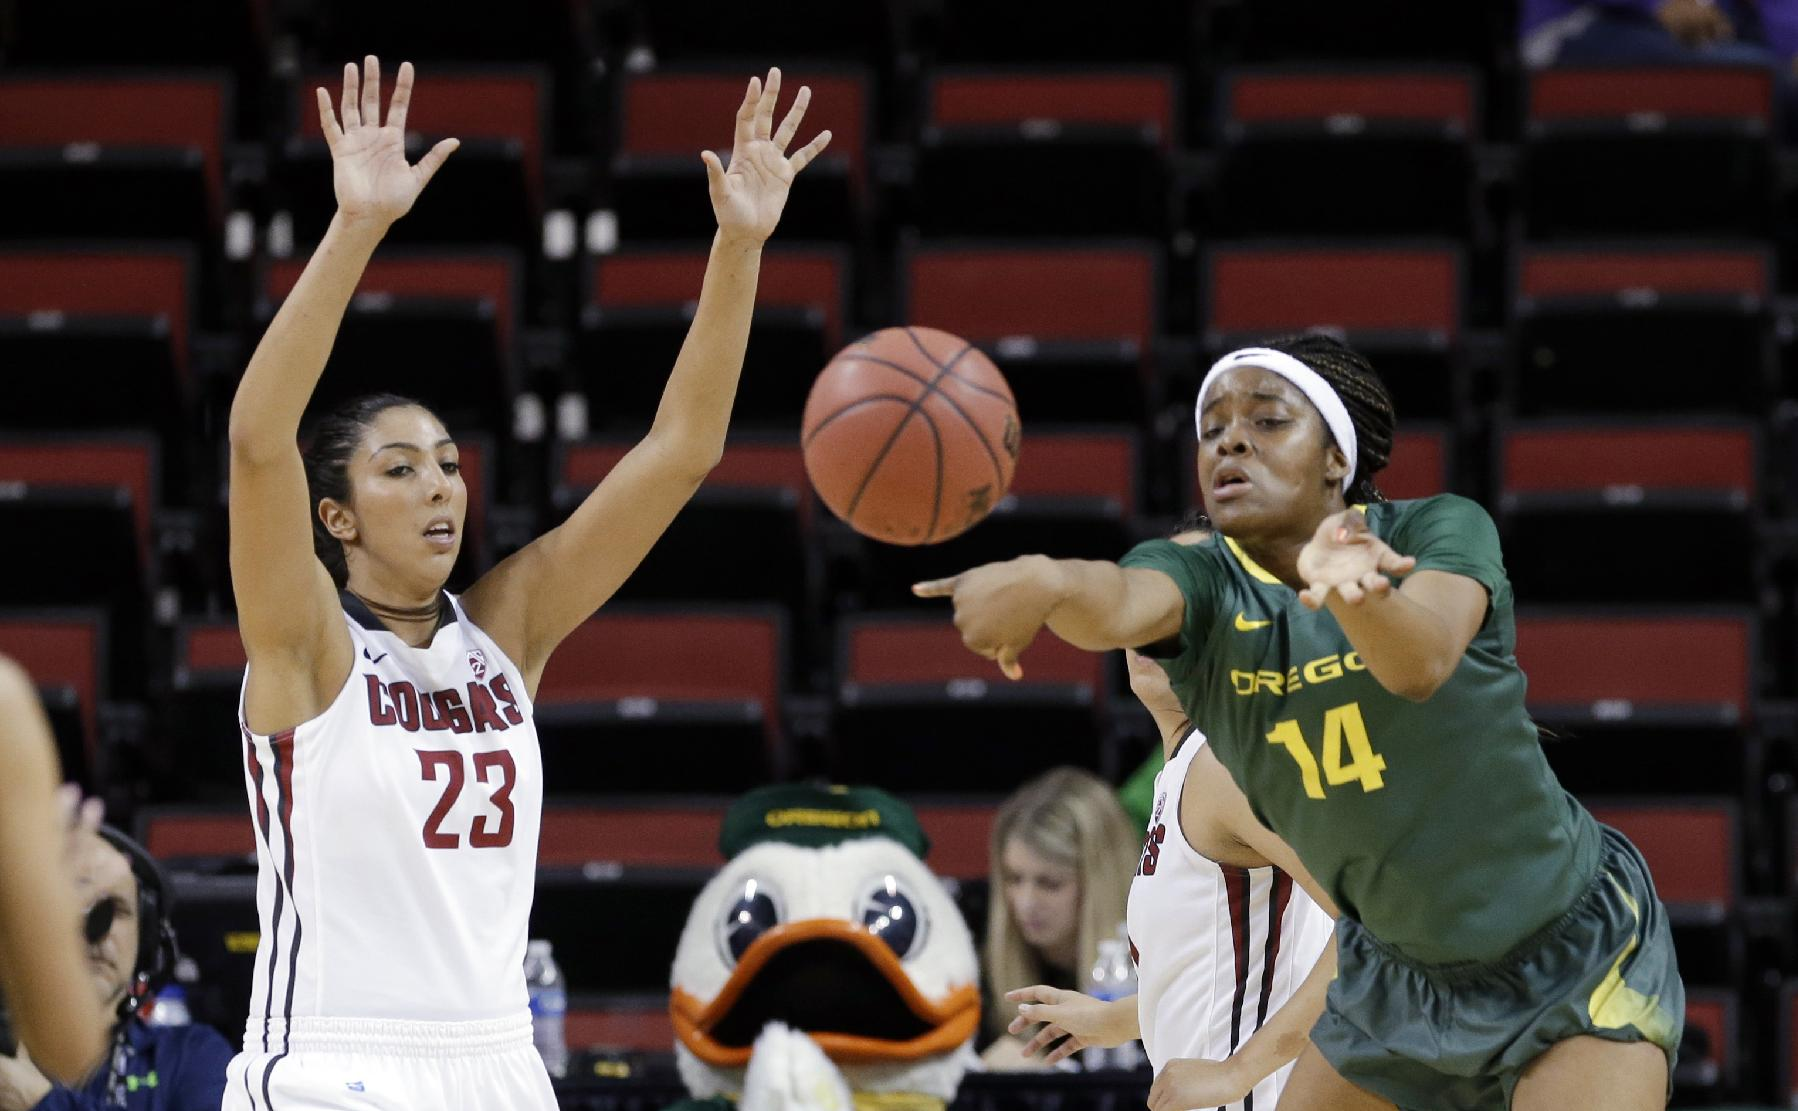 Oregon's Jillian Alleyne (14) passes in front of Washington State's Shalie Dheensaw during the second half of an NCAA college basketball game in the Pac-12 women's tournament Thursday, March 6, 2014, in Seattle. Washington State won 107-100